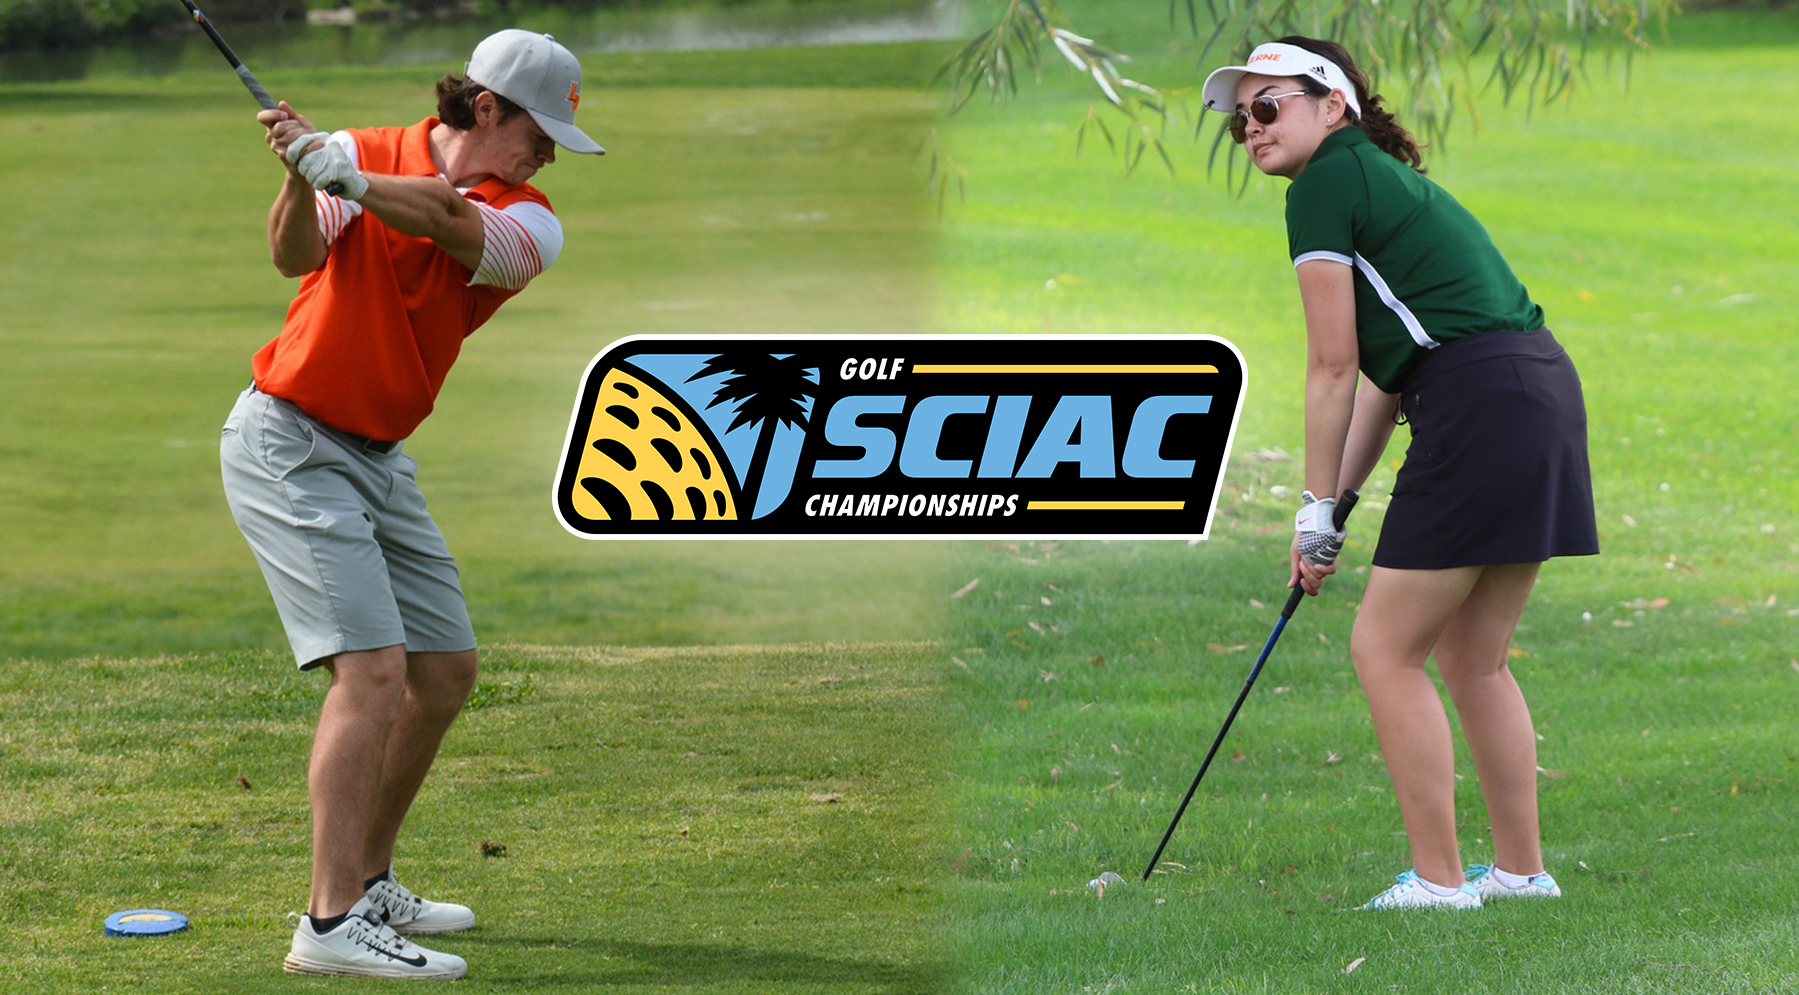 Men's and Women's Golf ready for SCIAC Championships